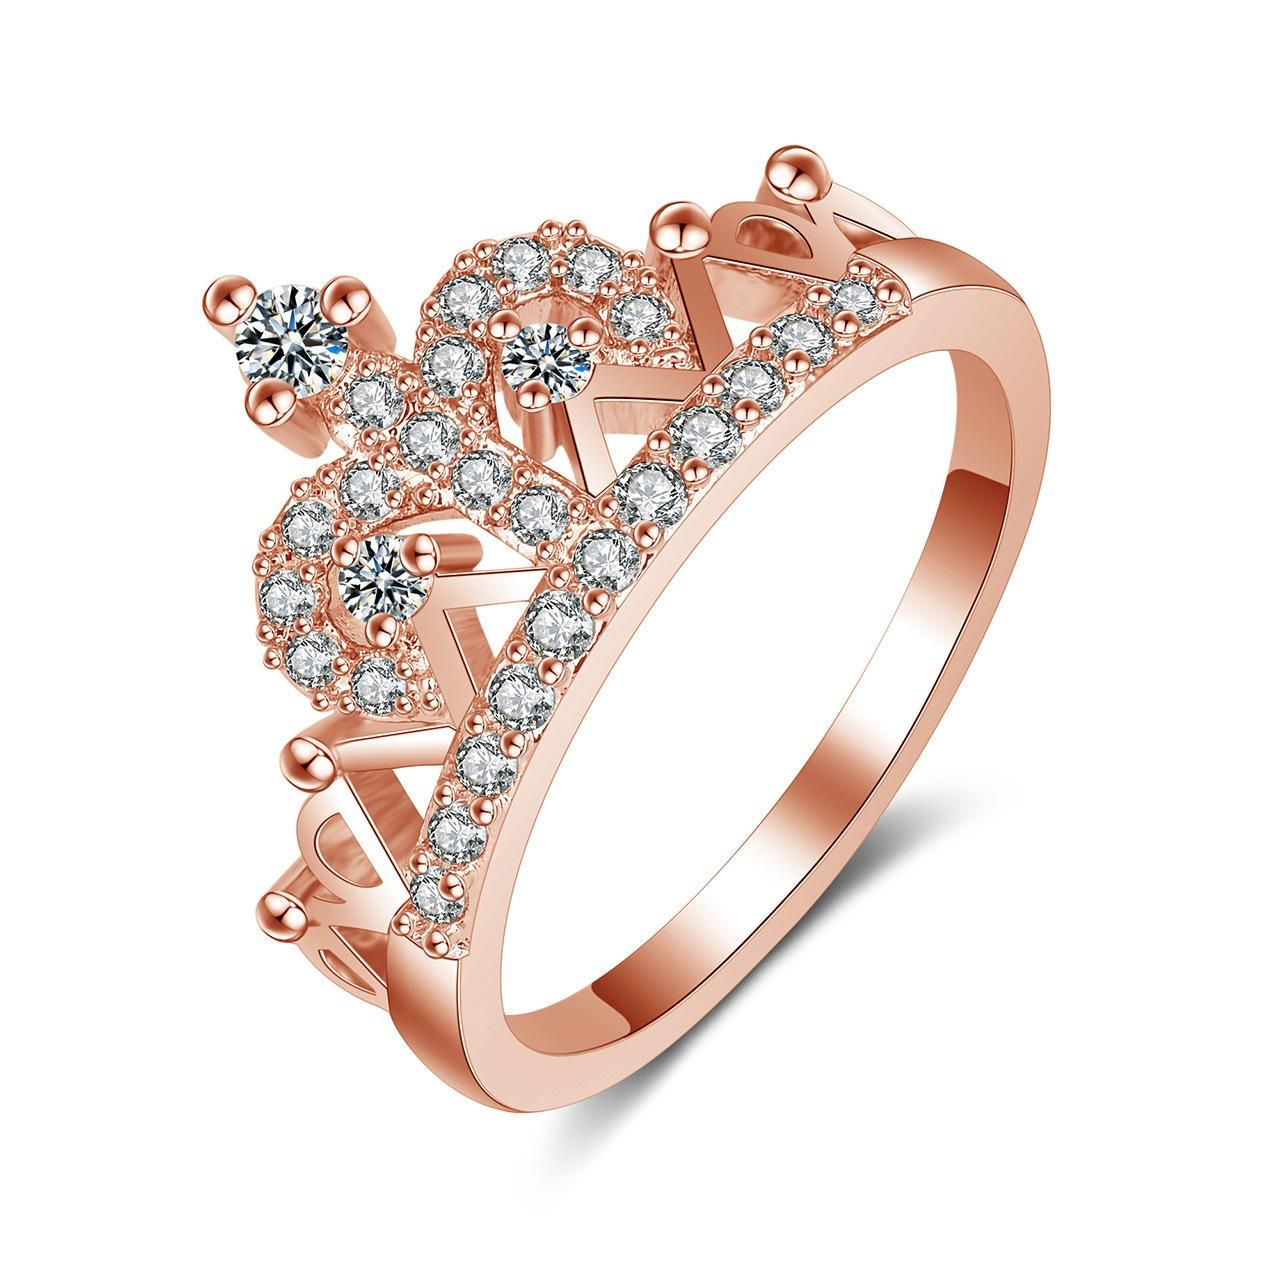 2019 K Gold Plated Zircon Crown Wedding Rings For Women